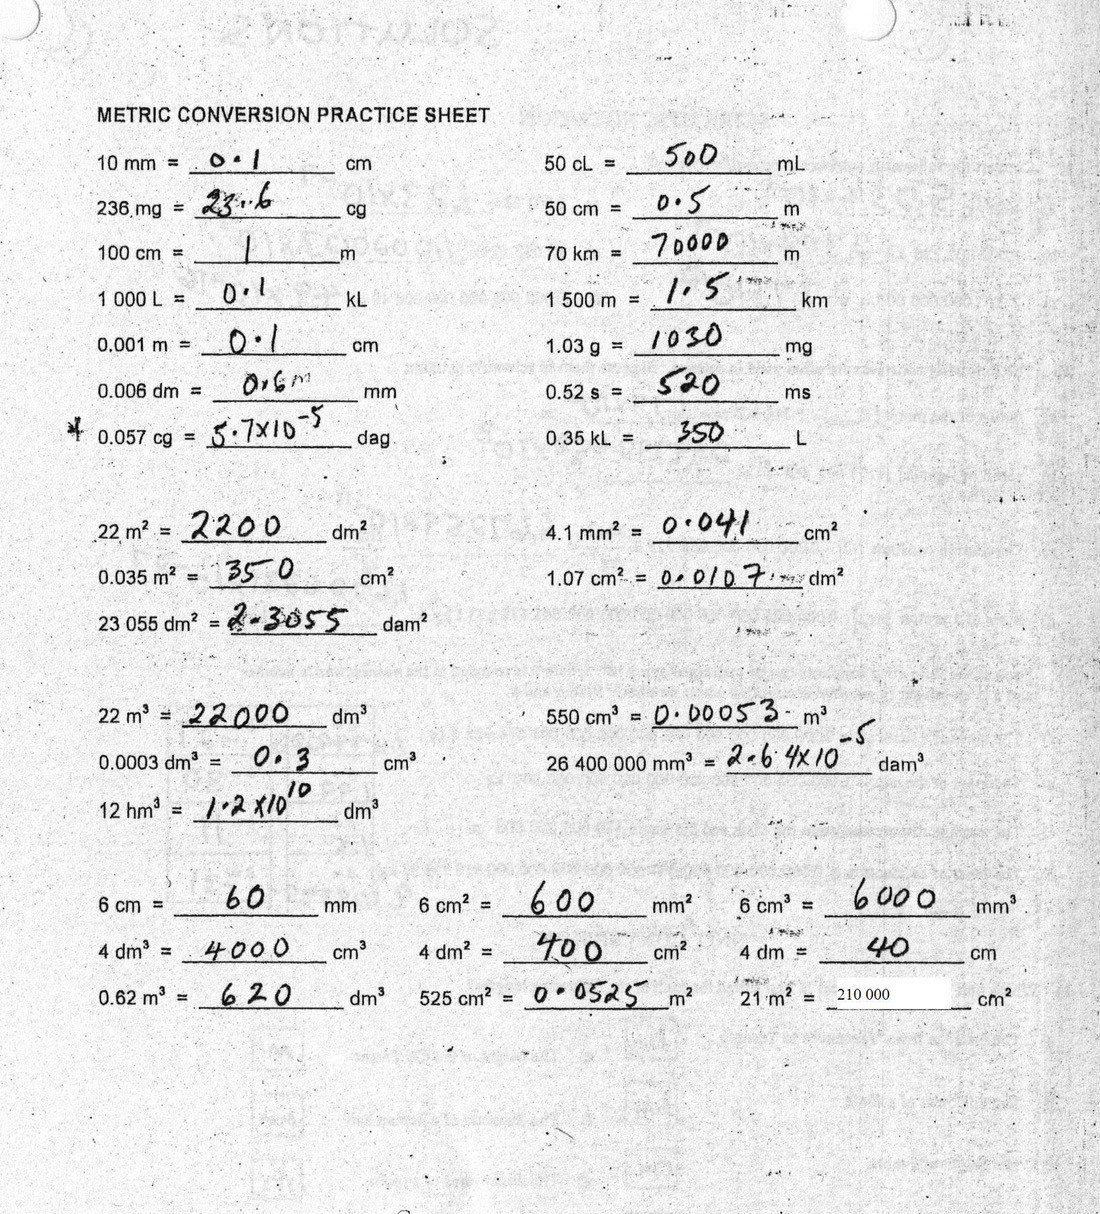 Metric Conversion Worksheet Answer Key Metric Conversions